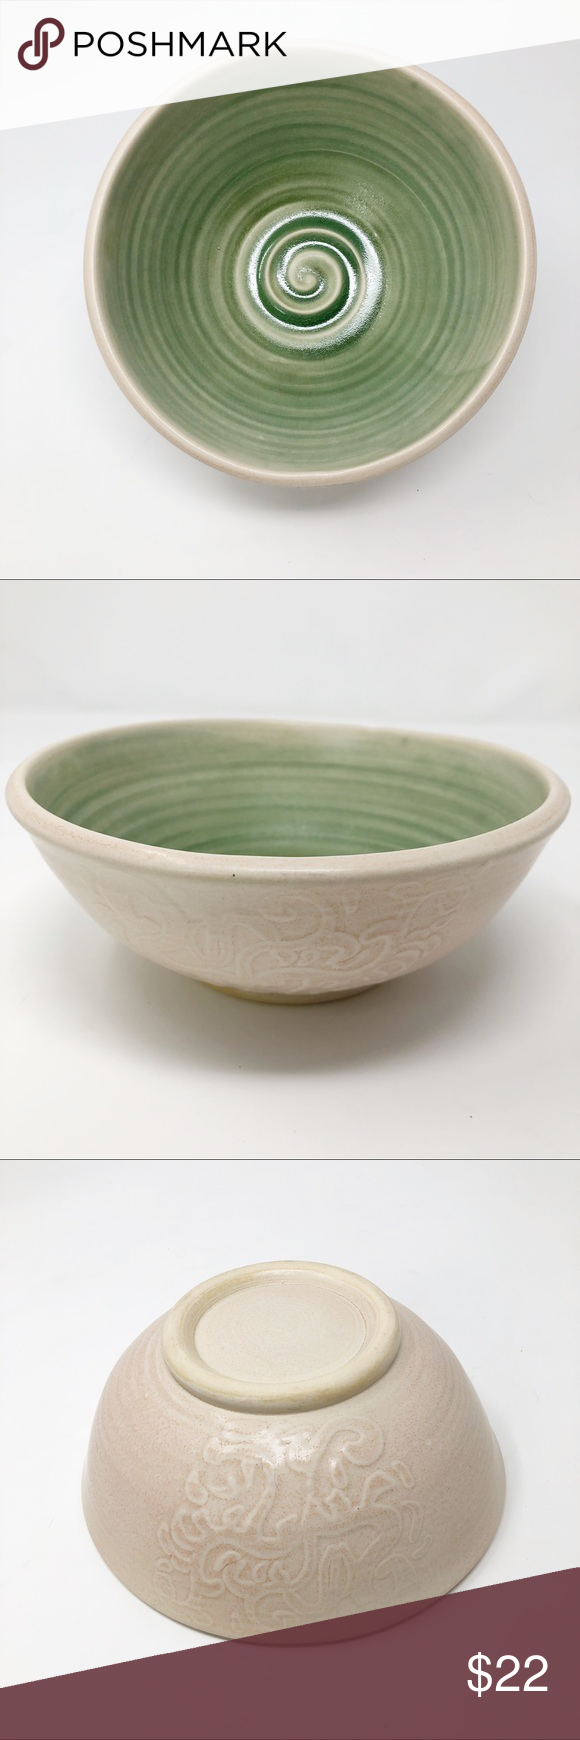 Photo of Handmade Ceramic Bowl Rustic Farmhouse Pottery Handmade ceramic wheel thrown bow…